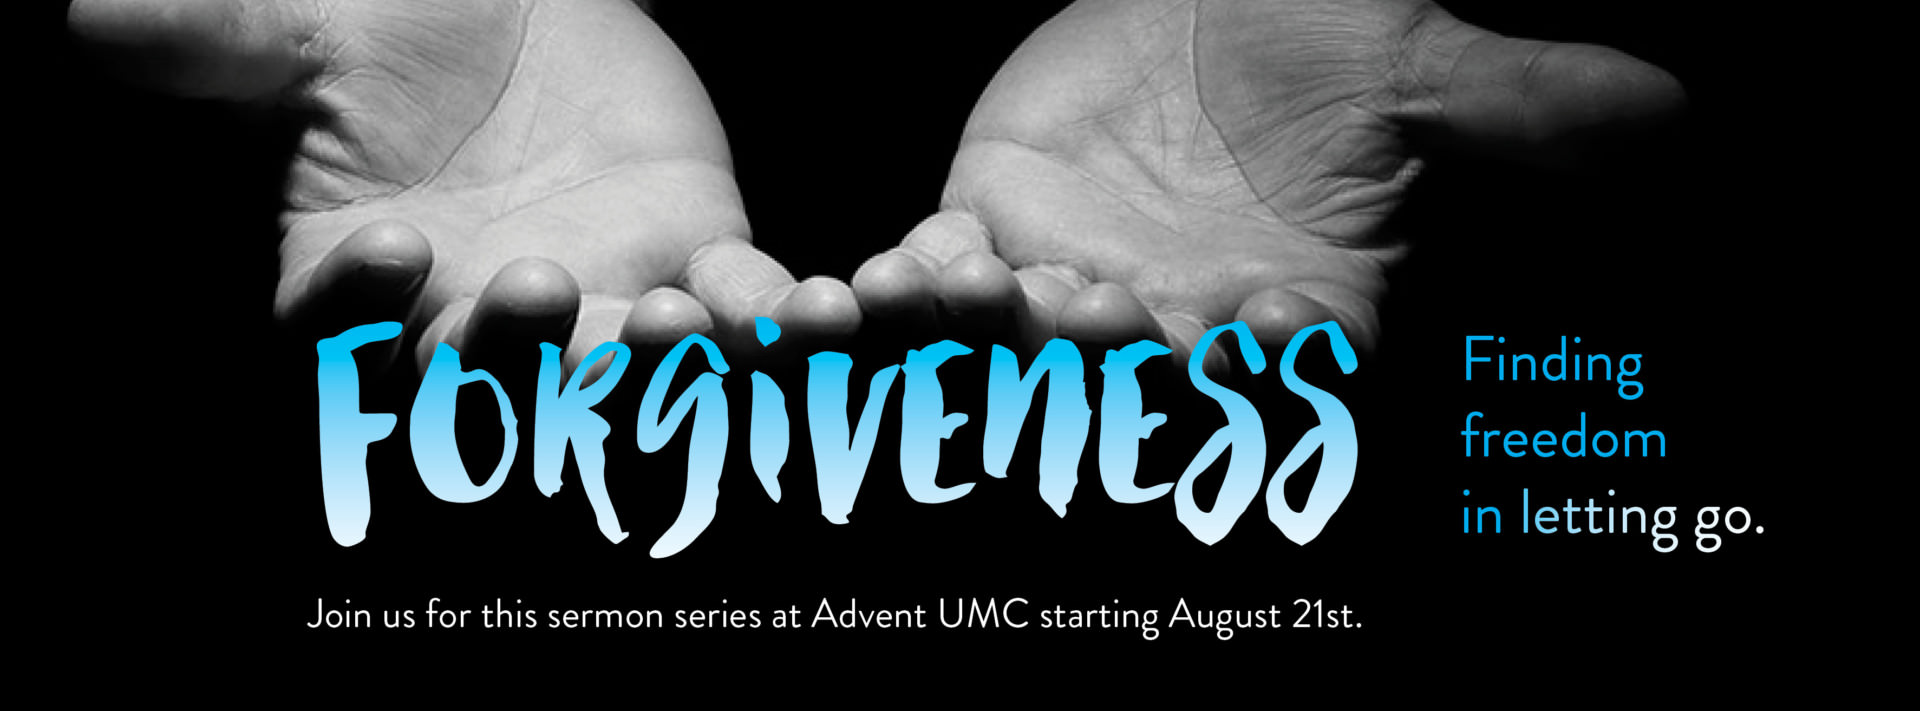 AdventUMC_Forgiveness_FBcover